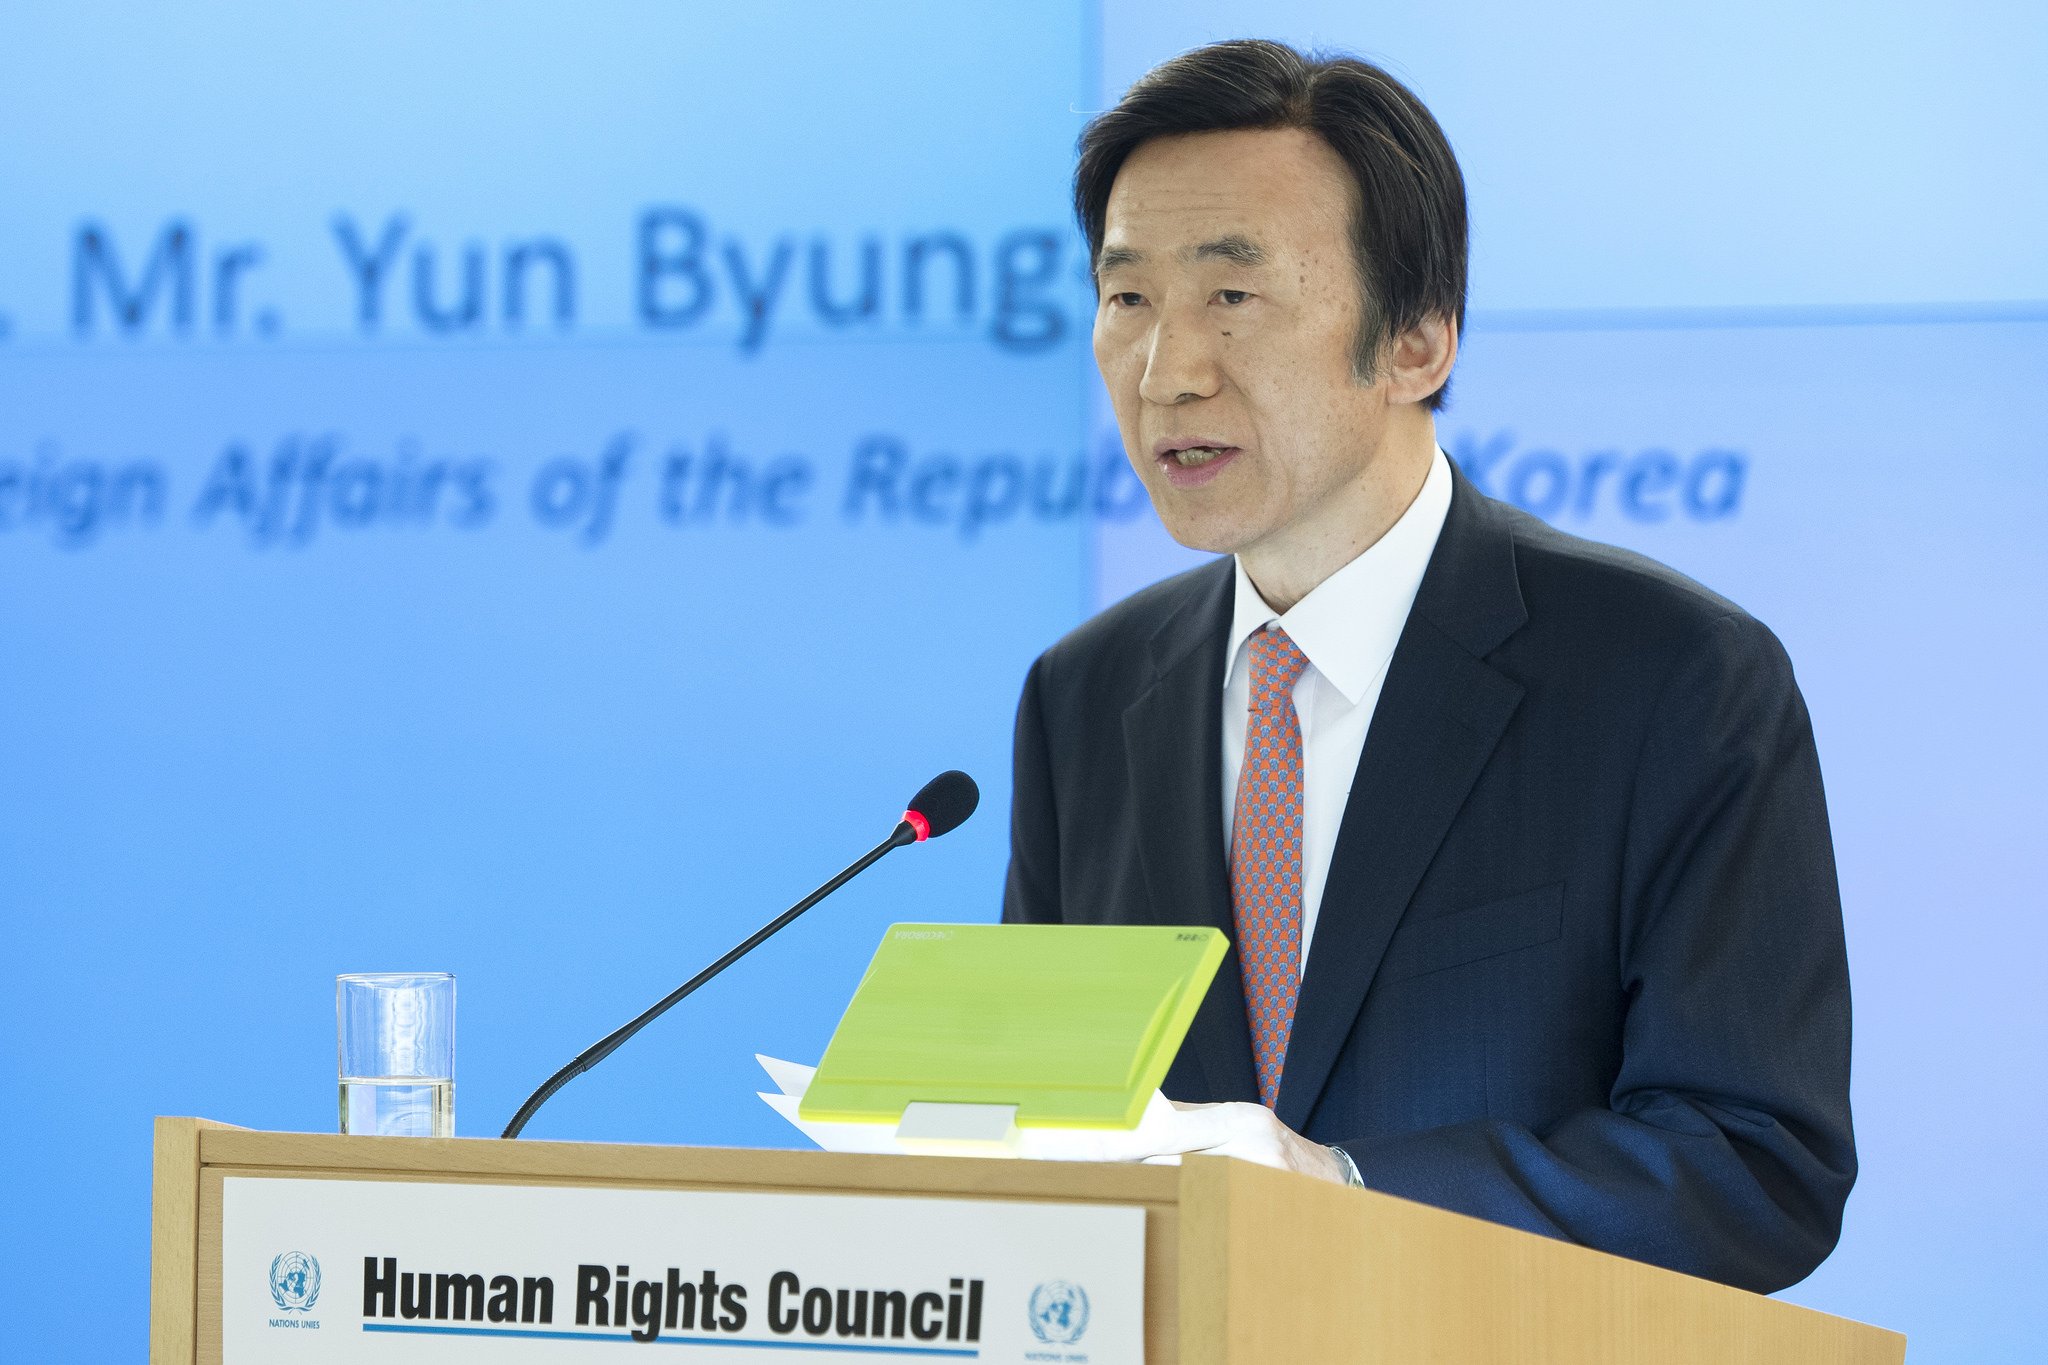 Minister for Foreign Affairs of the Republic of Korea Yun Byung-se.